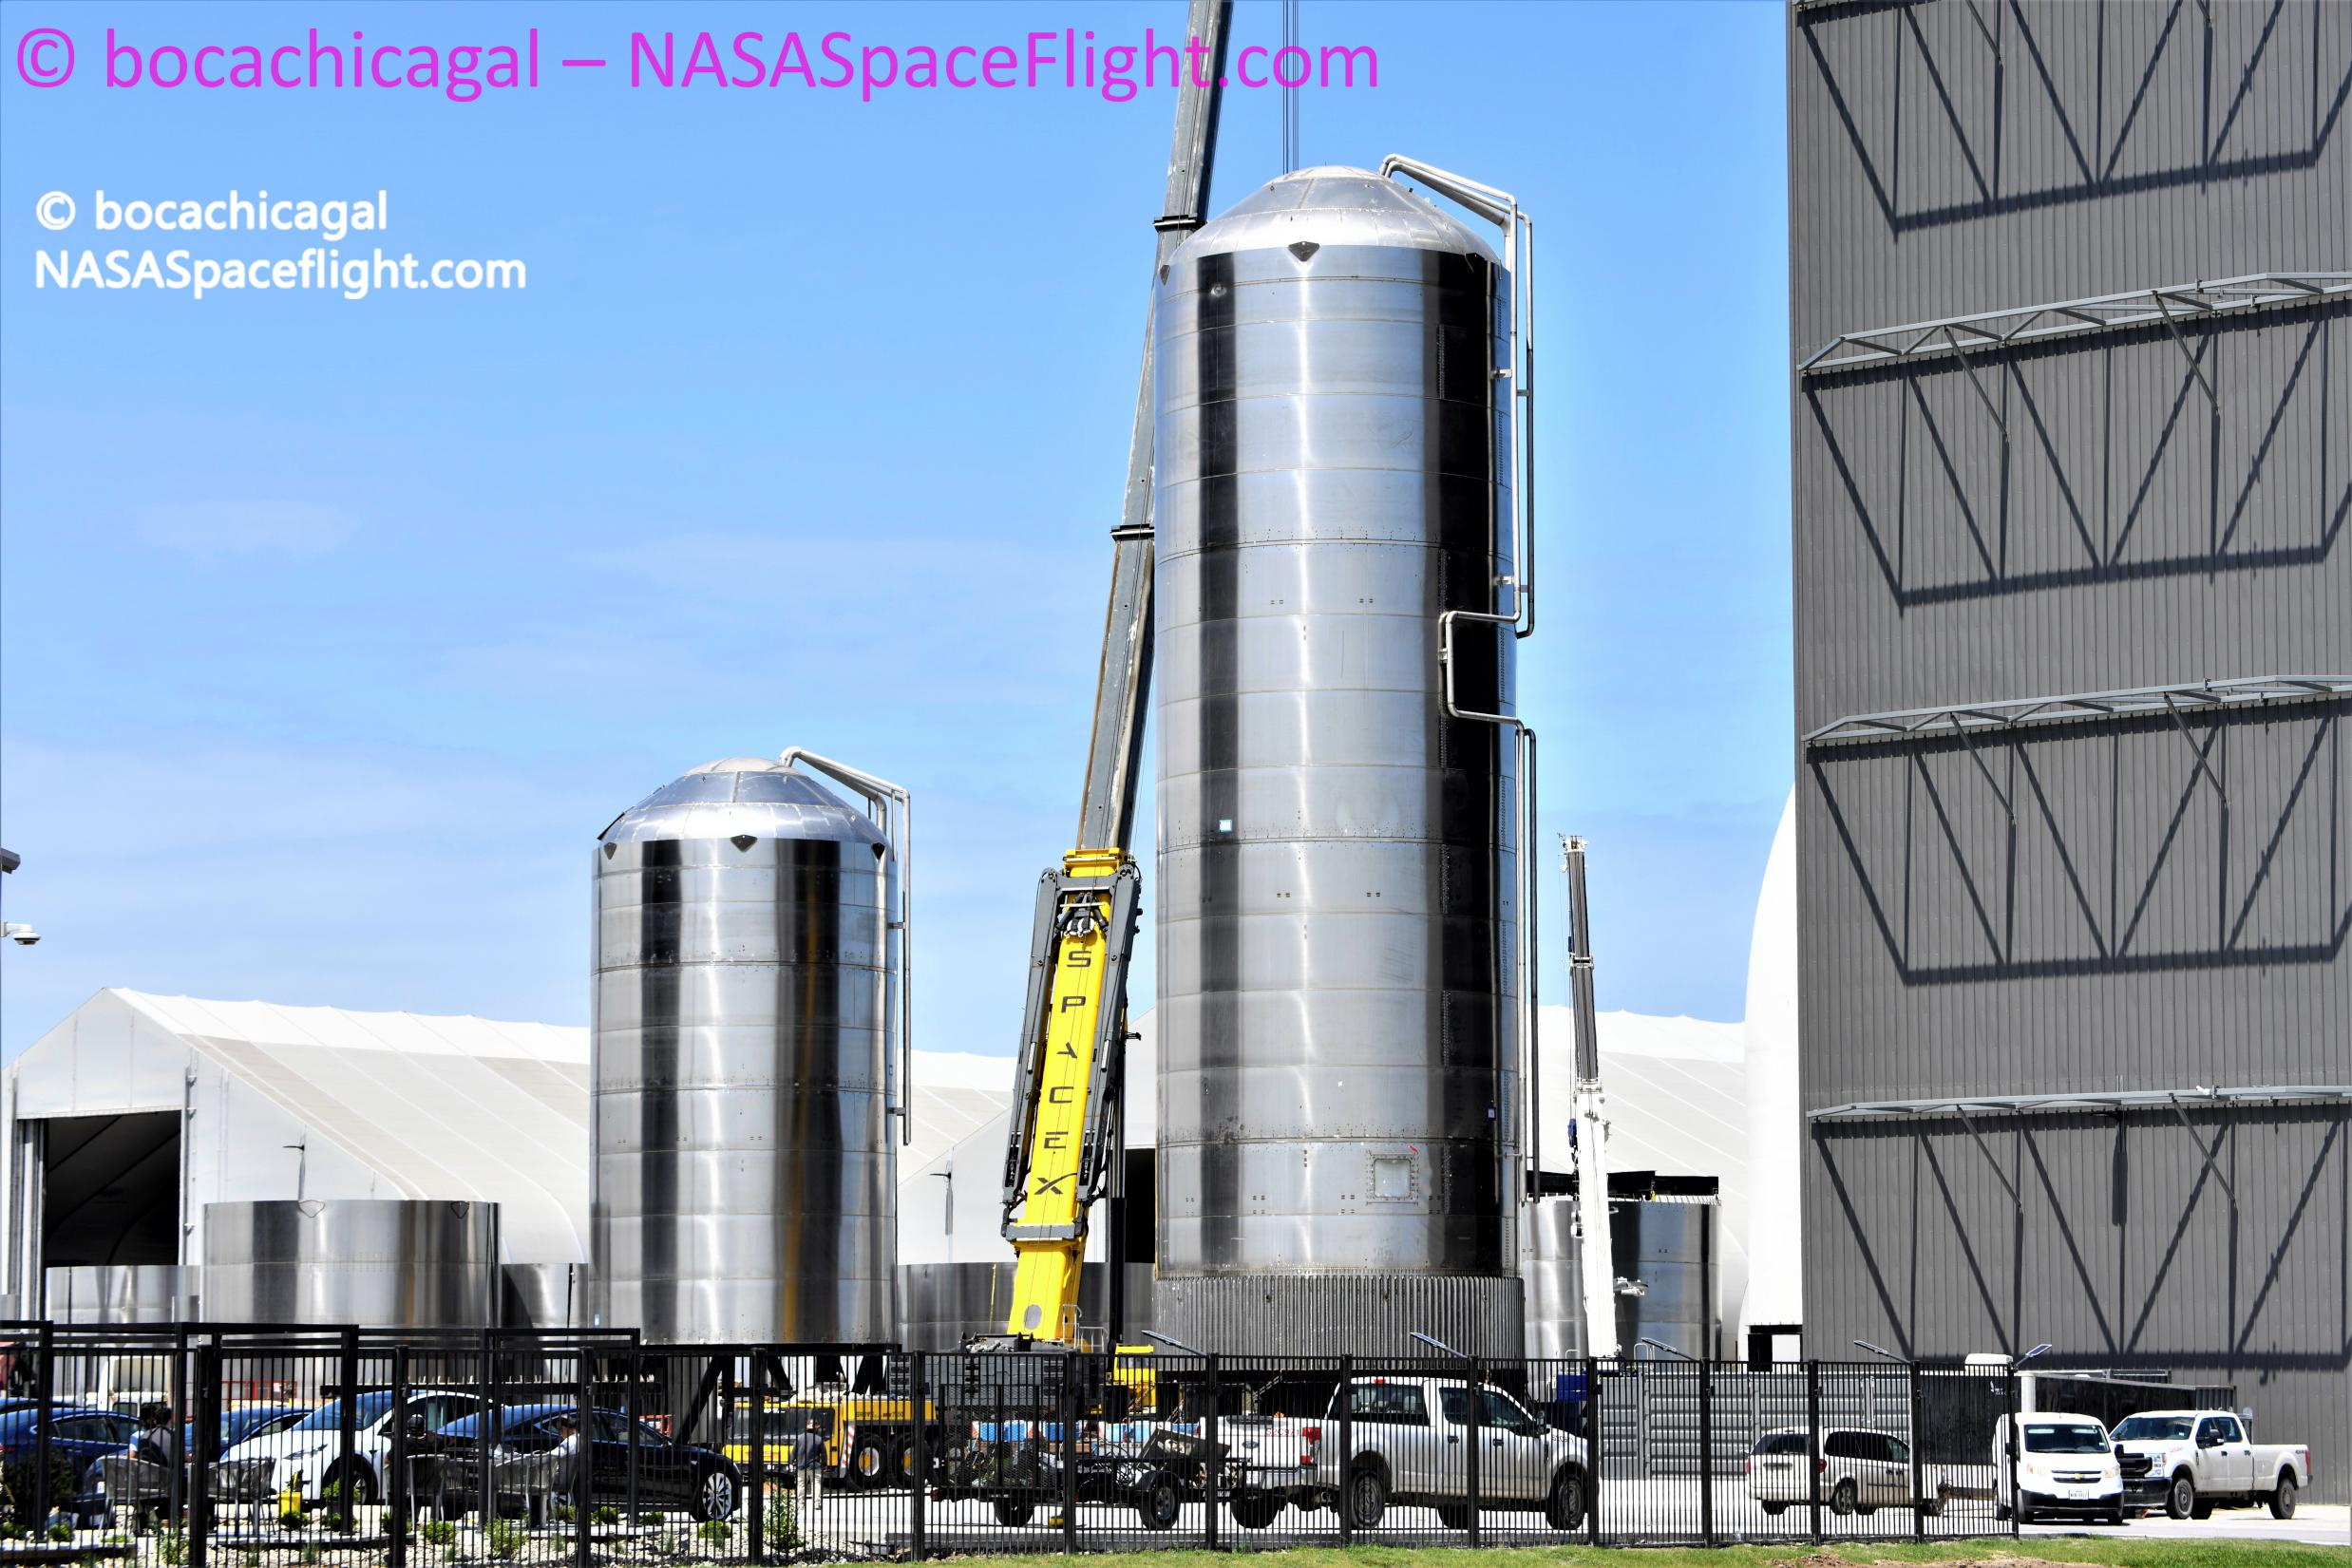 Starship Boca Chica 040521 (NASASpaceflight – bocachicagal) GSE1 rollout + GSE2 1 edit (c)